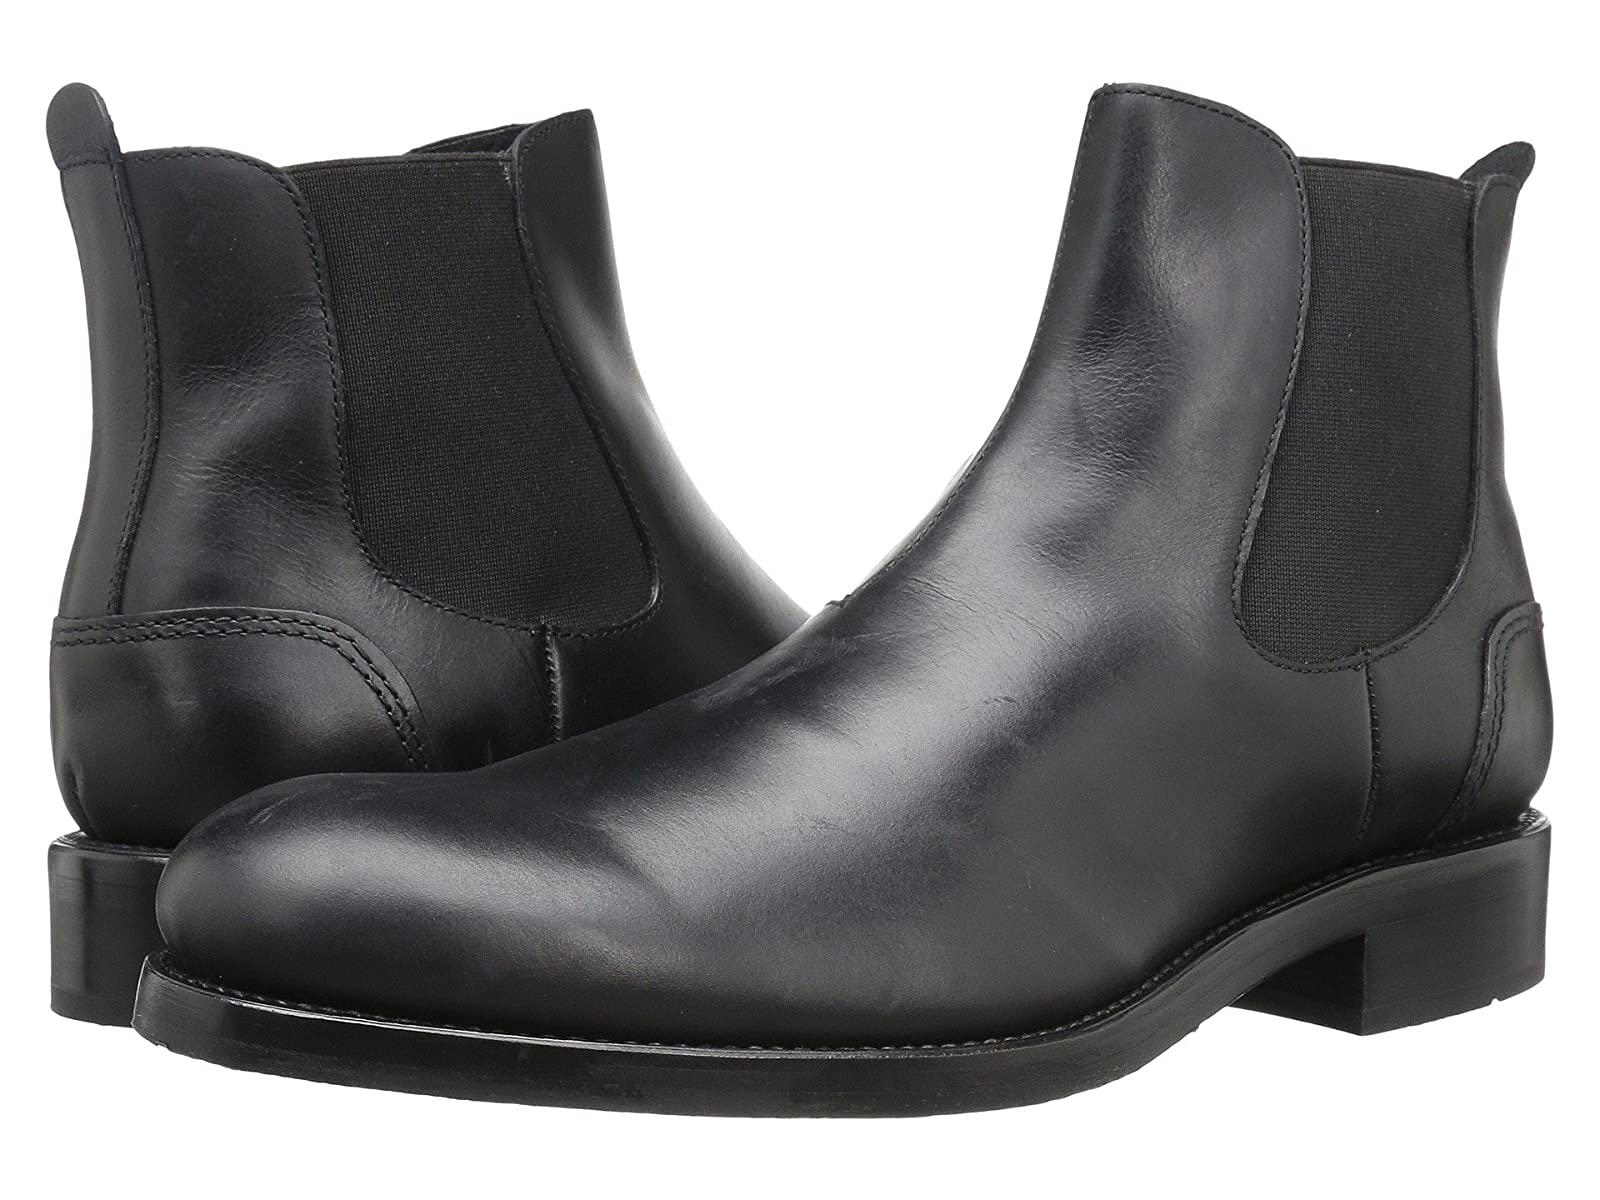 Wolverine 1000 Mile Montague Chelsea BootEconomical and quality shoes